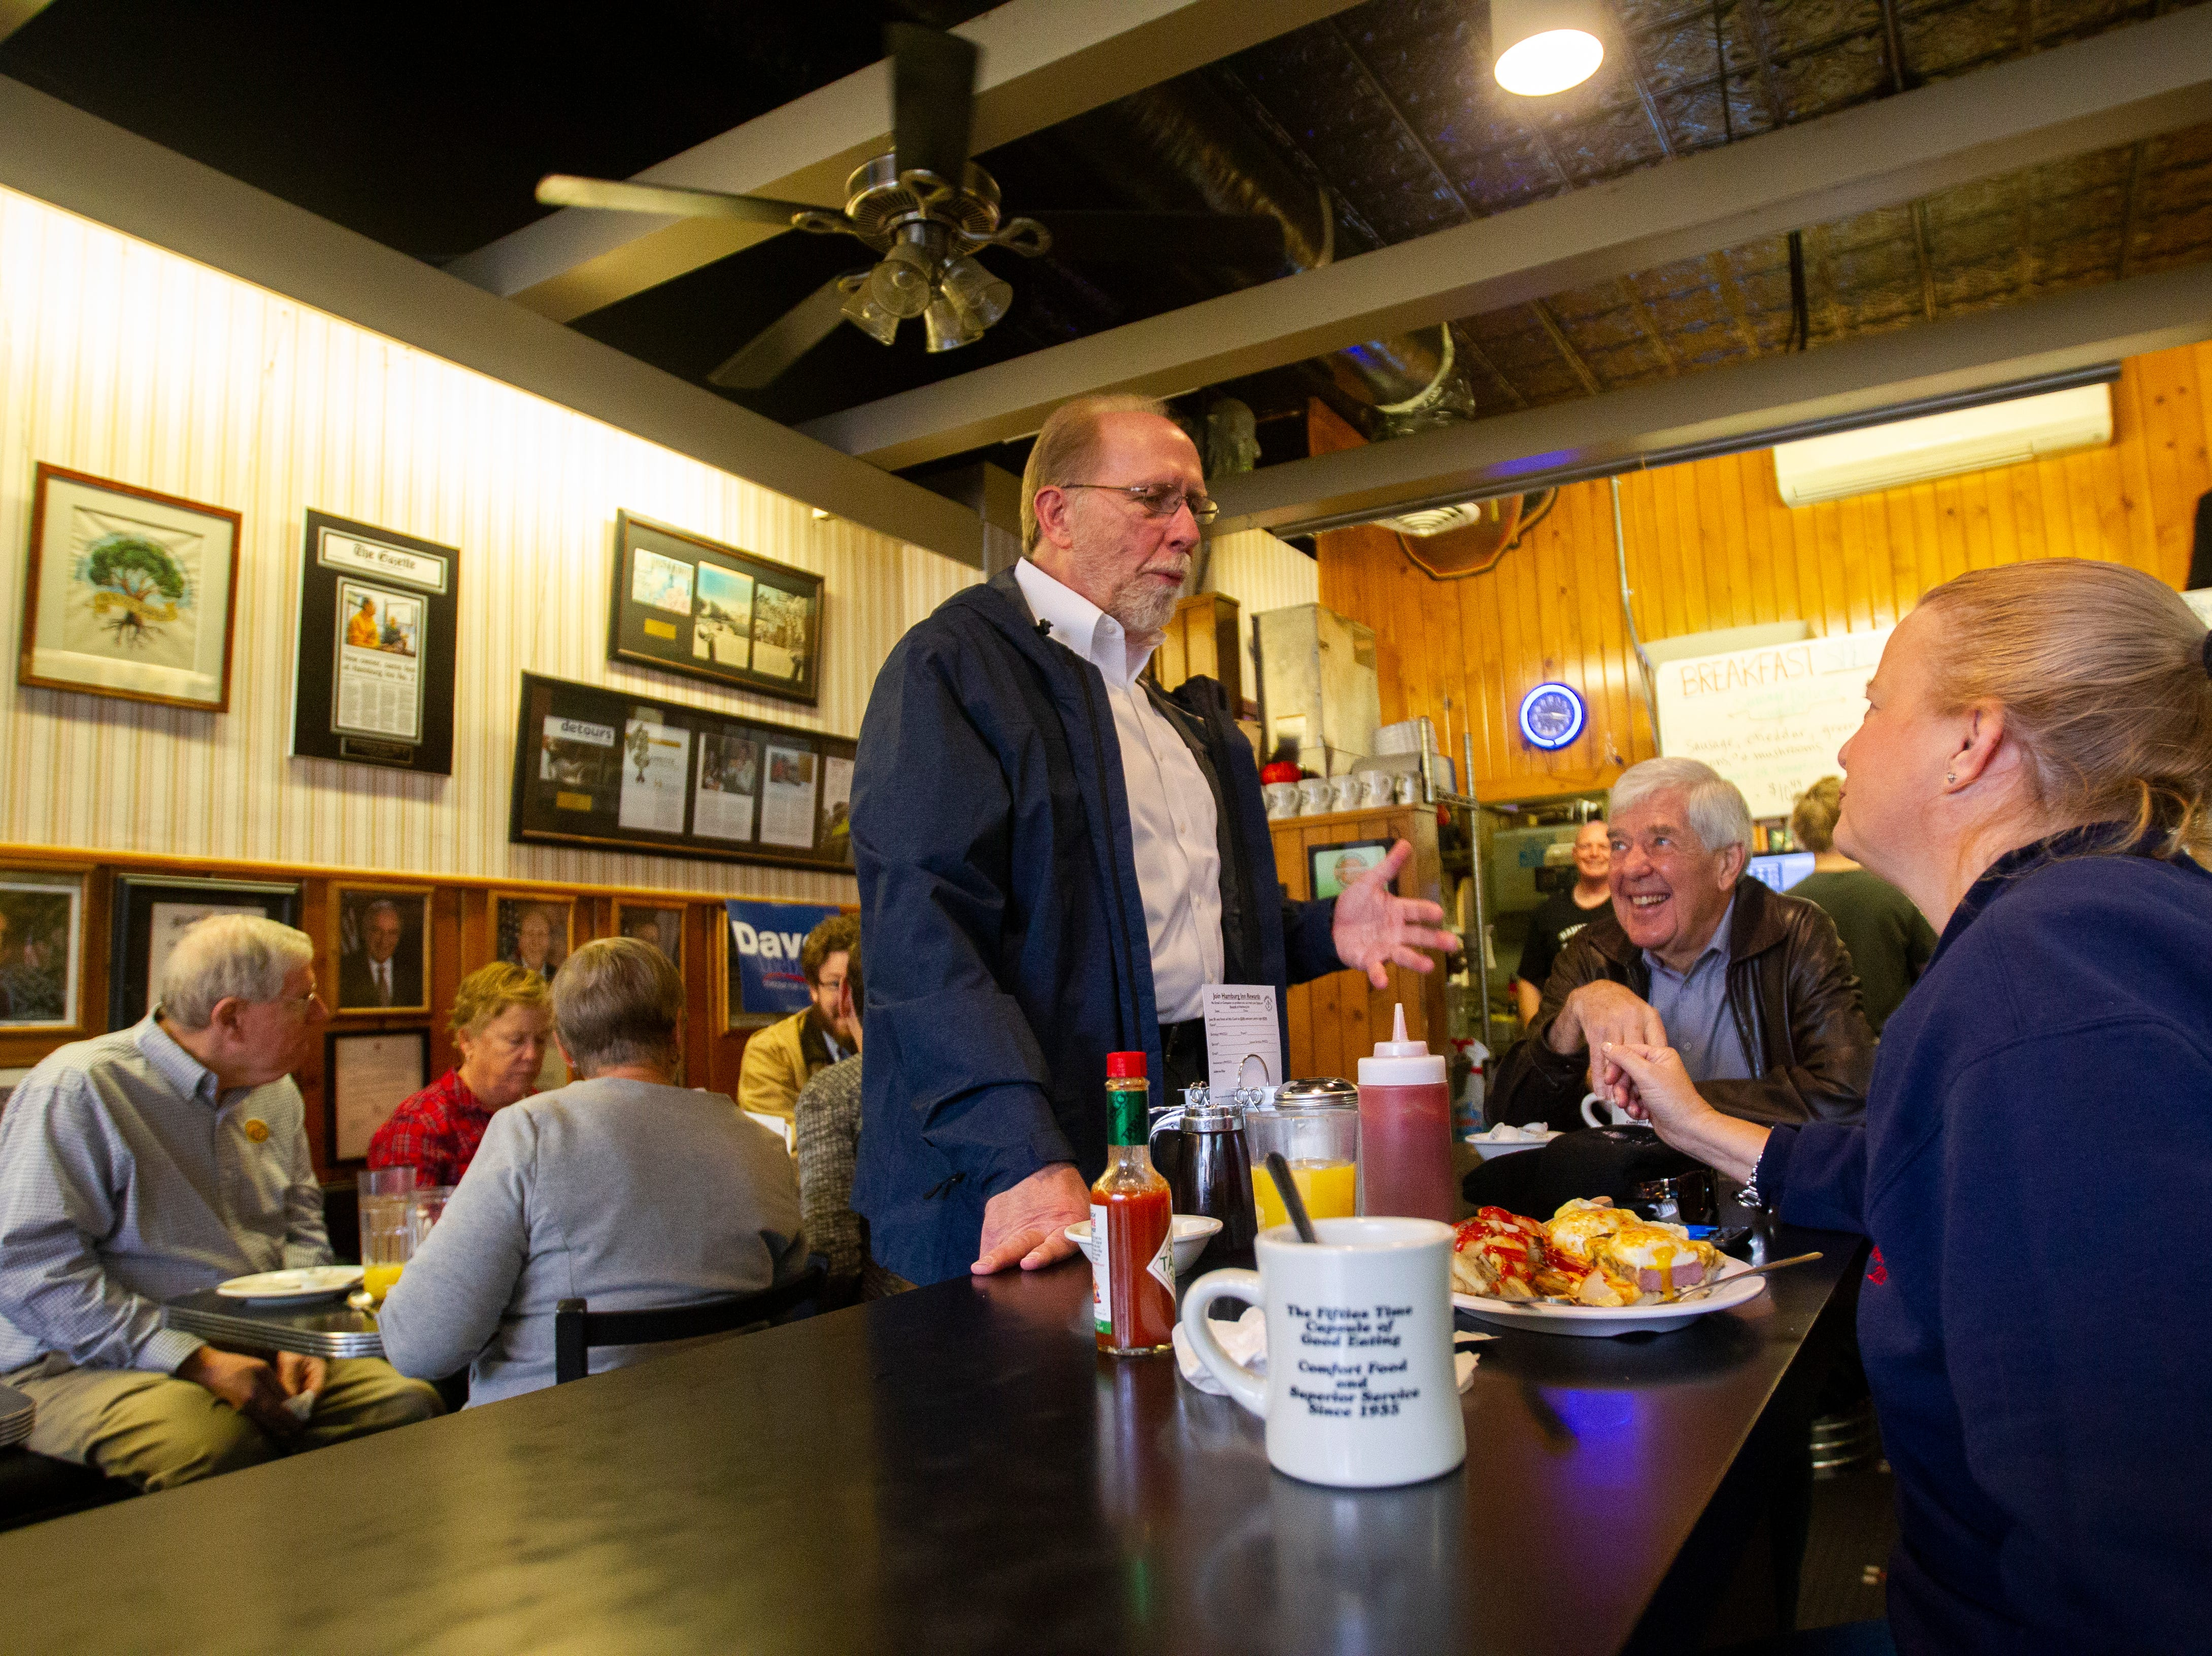 U.S. Rep. Dave Loebsack, D-Iowa, (center) talks with Gary Wicklund and Ara Carbonneau, both of Coralville on Thursday morning, Nov. 1, 2018, at Hamburg Inn No. 2 on Linn Street in Iowa City.